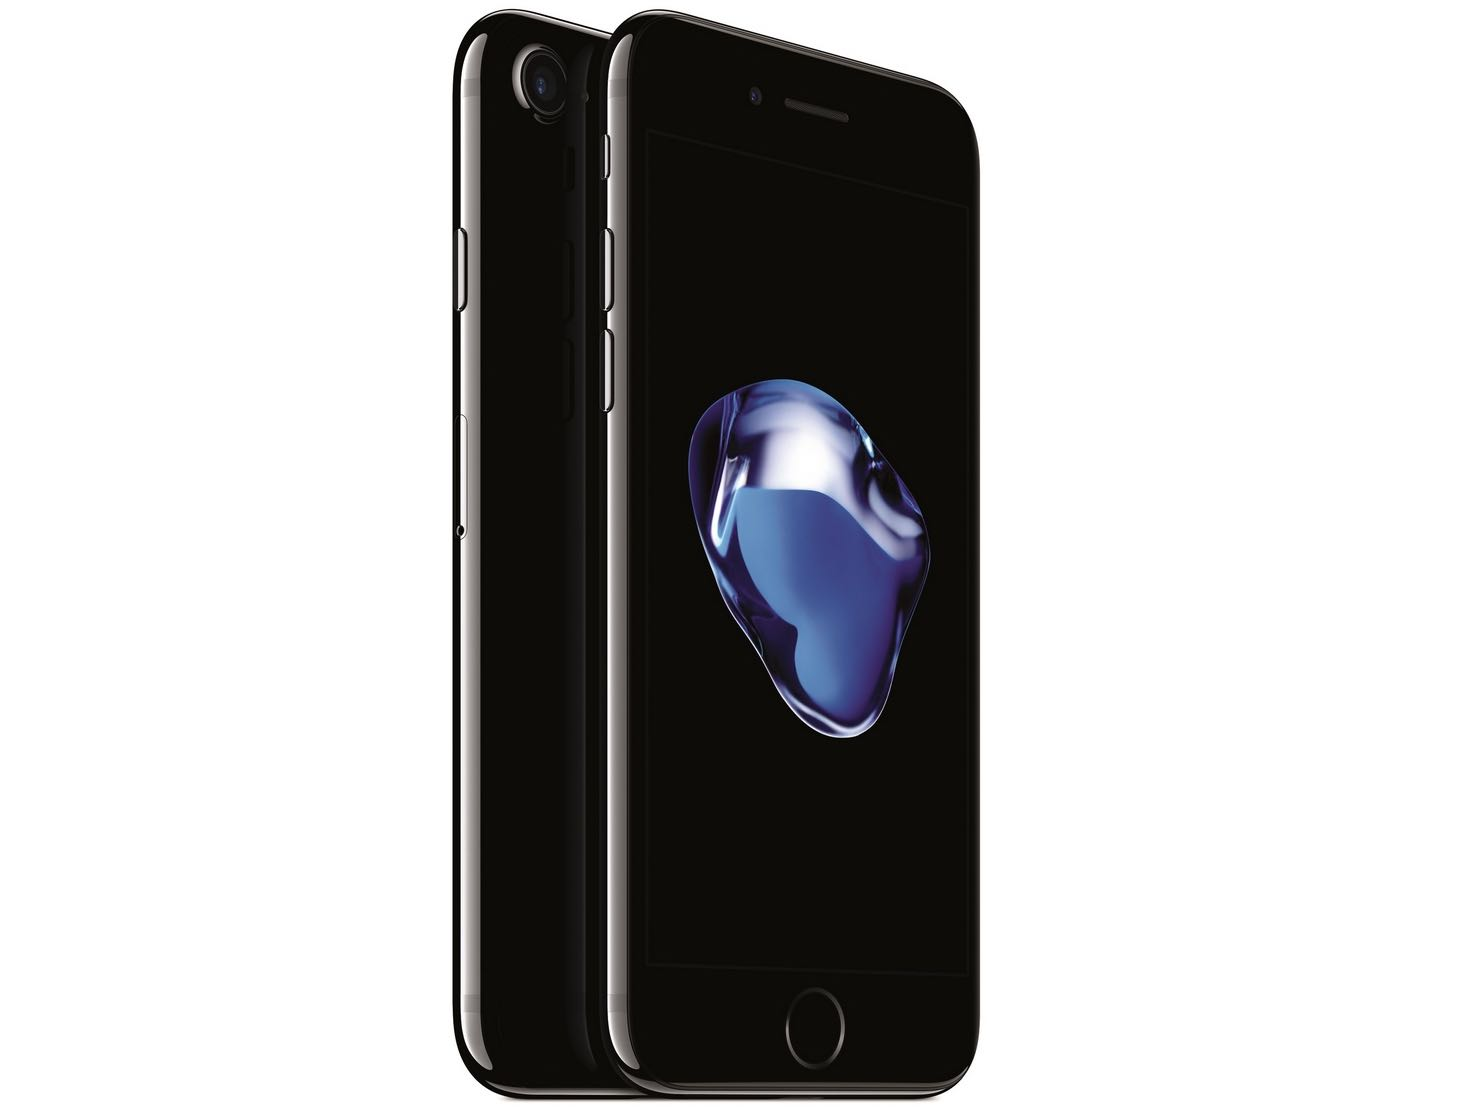 Apple iPhone 7 Black New 2